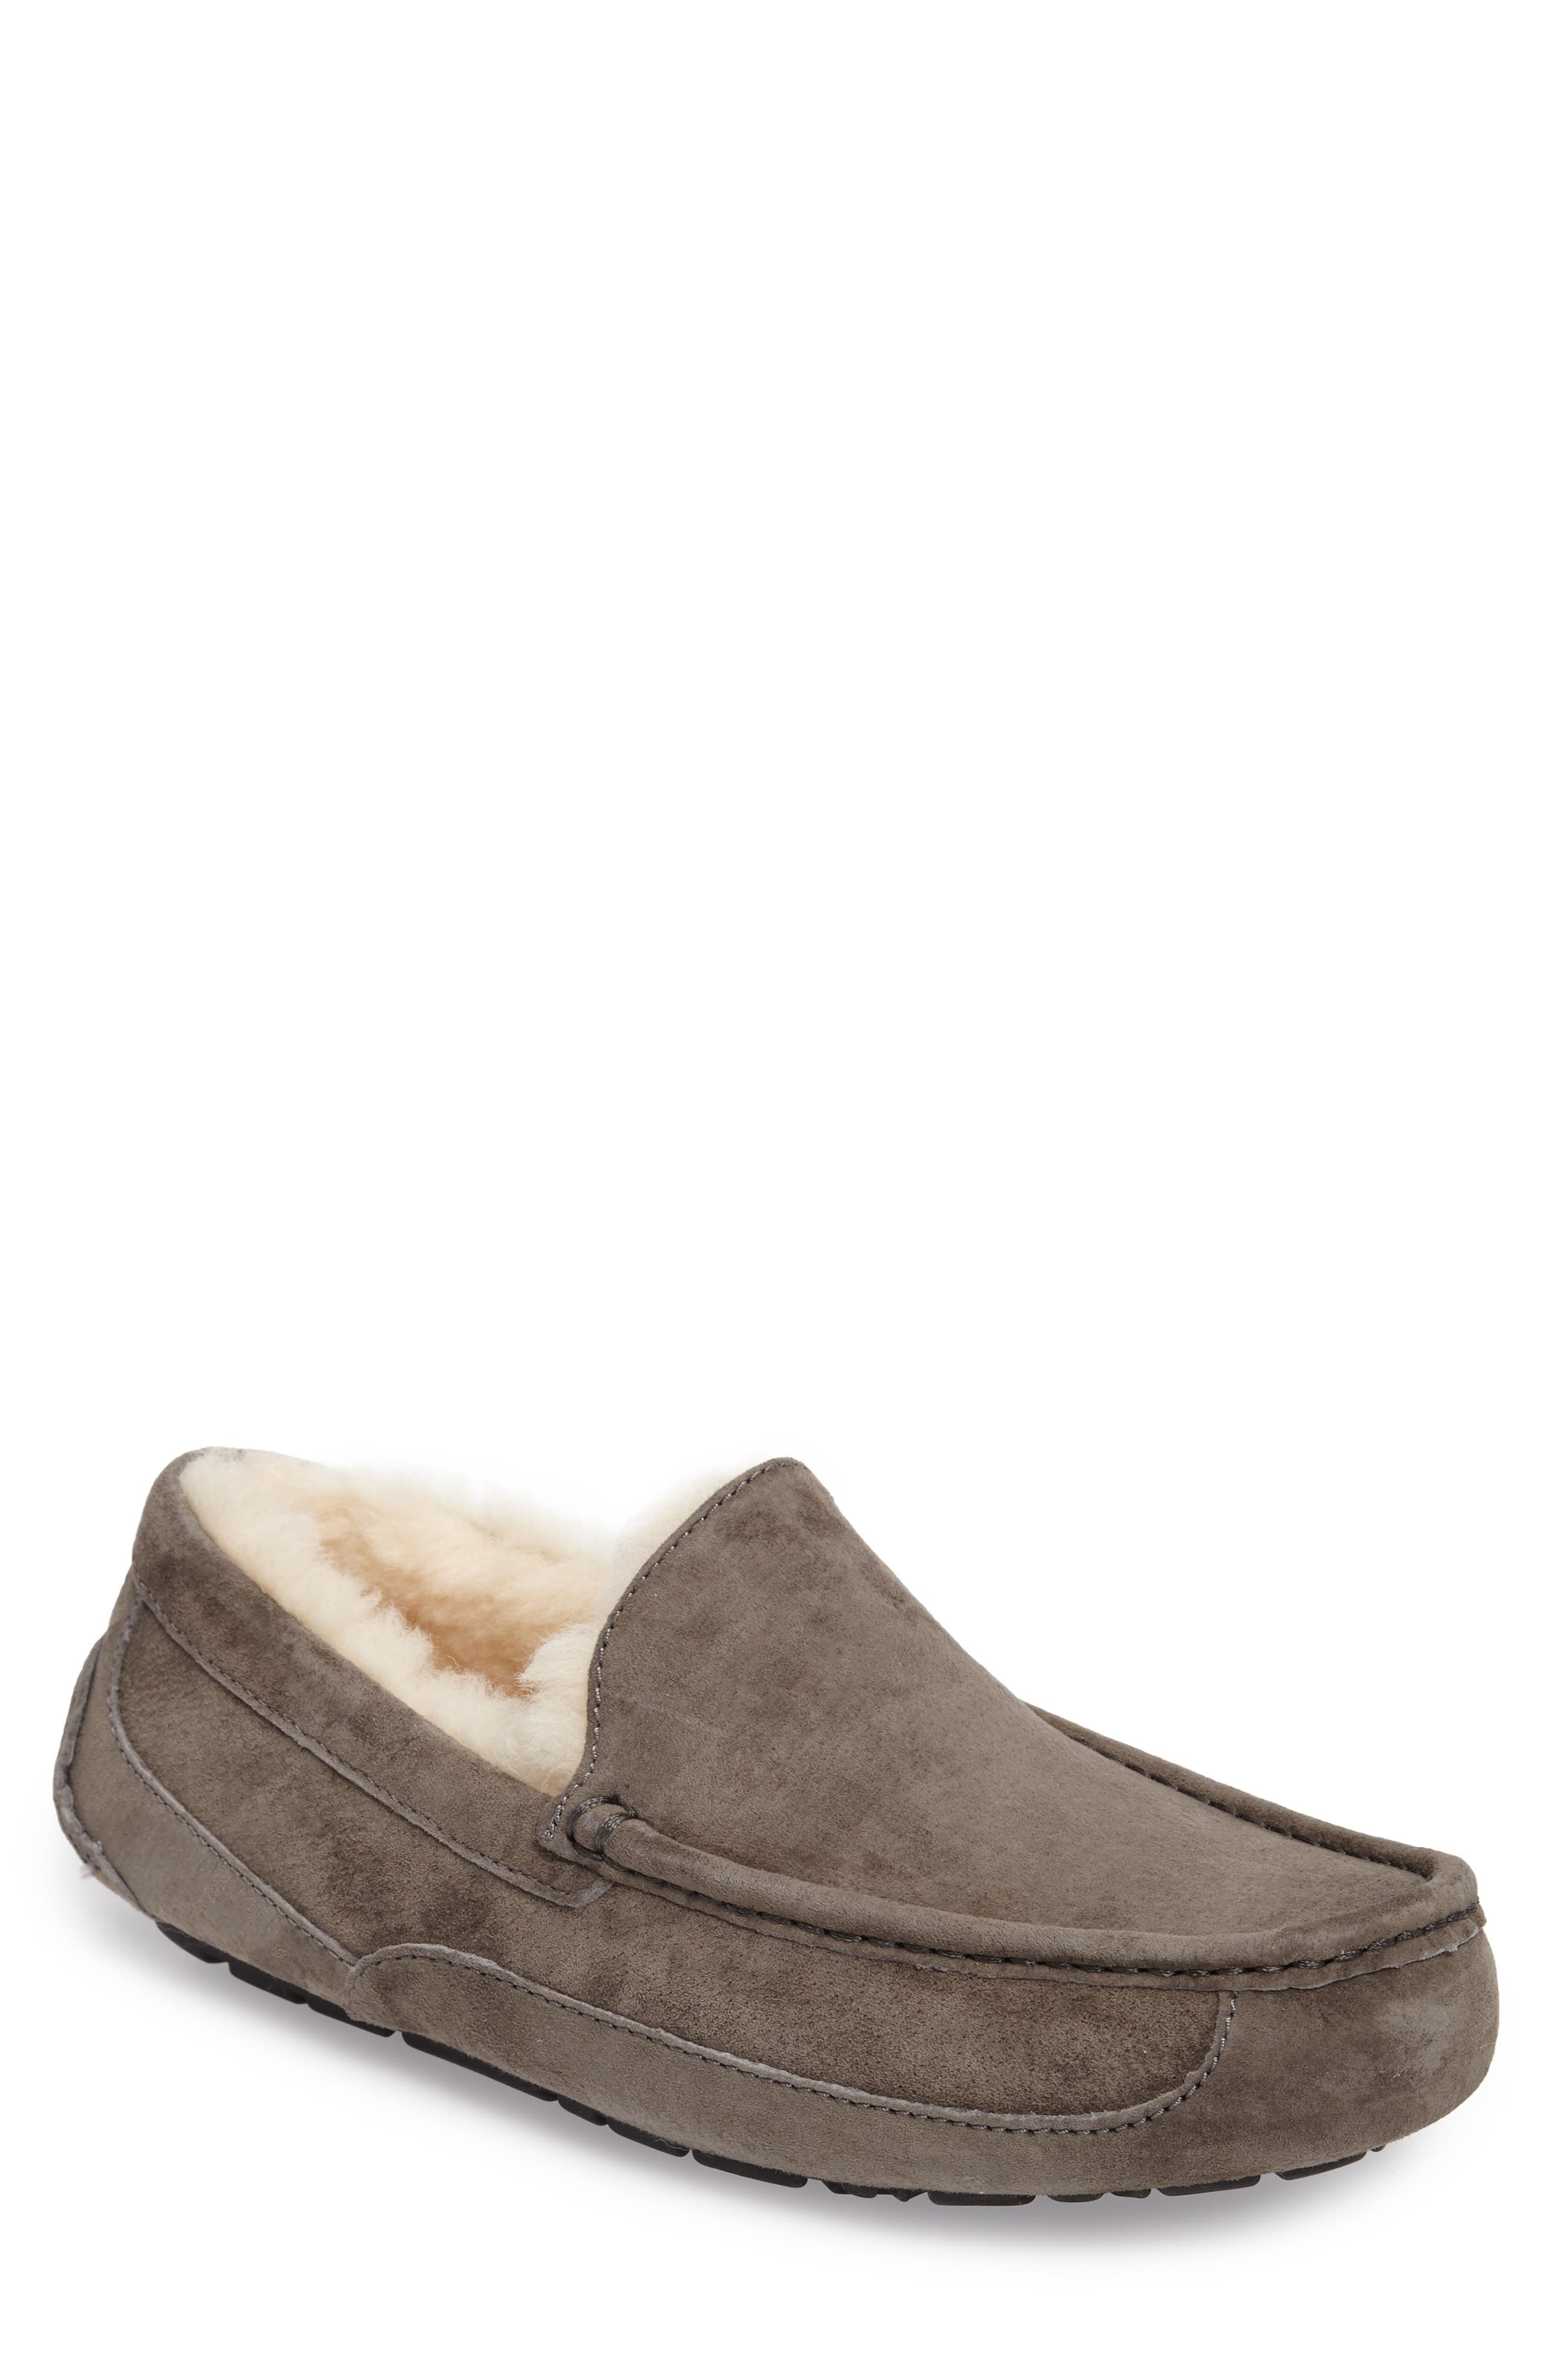 Ascot Suede Slipper,                         Main,                         color, CHARCOAL